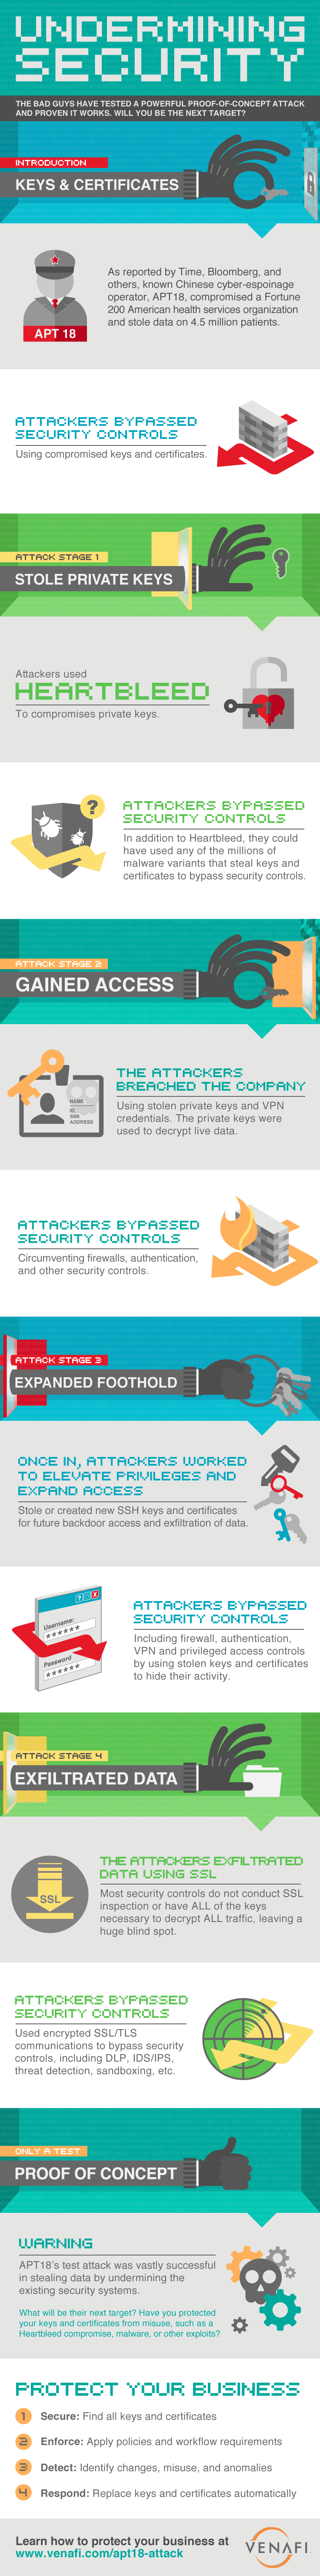 undermining security infographic